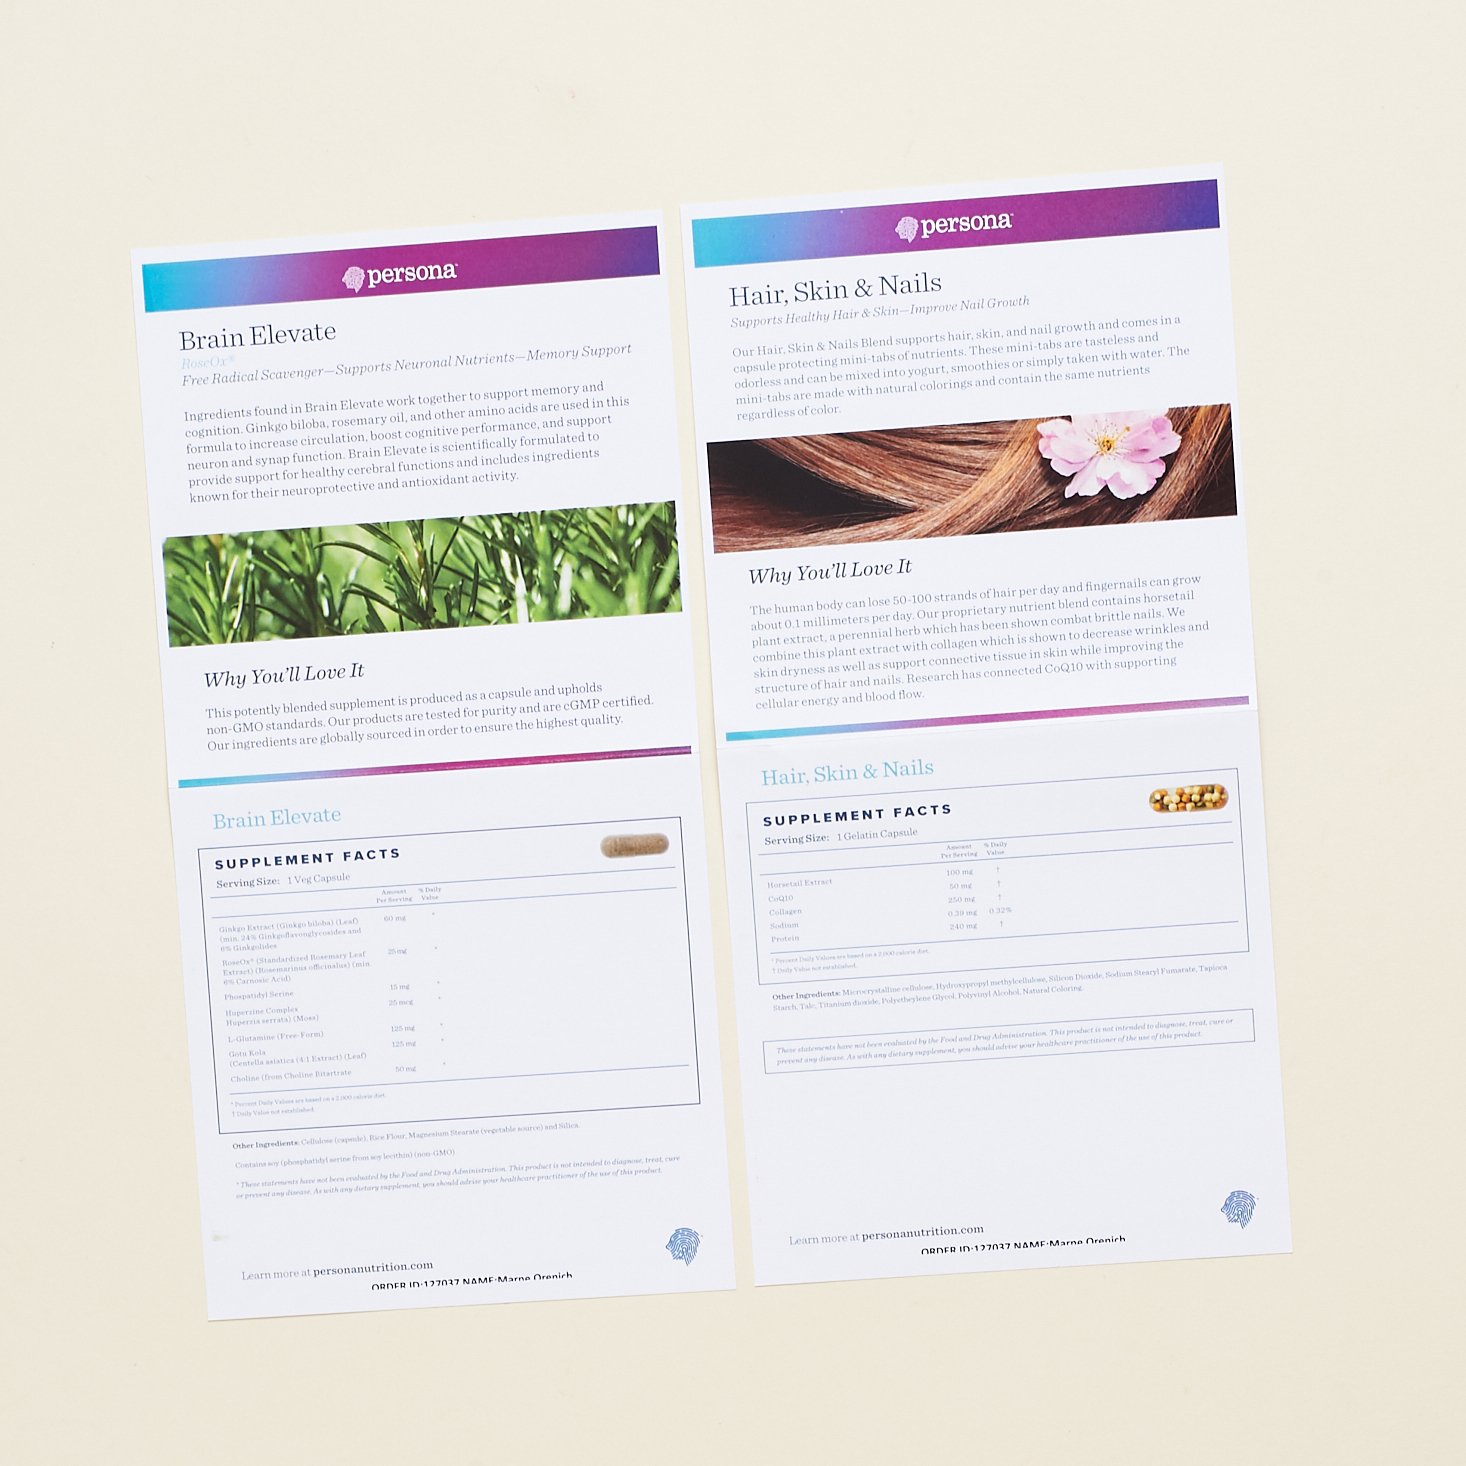 Brain Elevate and Hair, Skin, Nails Info sheets